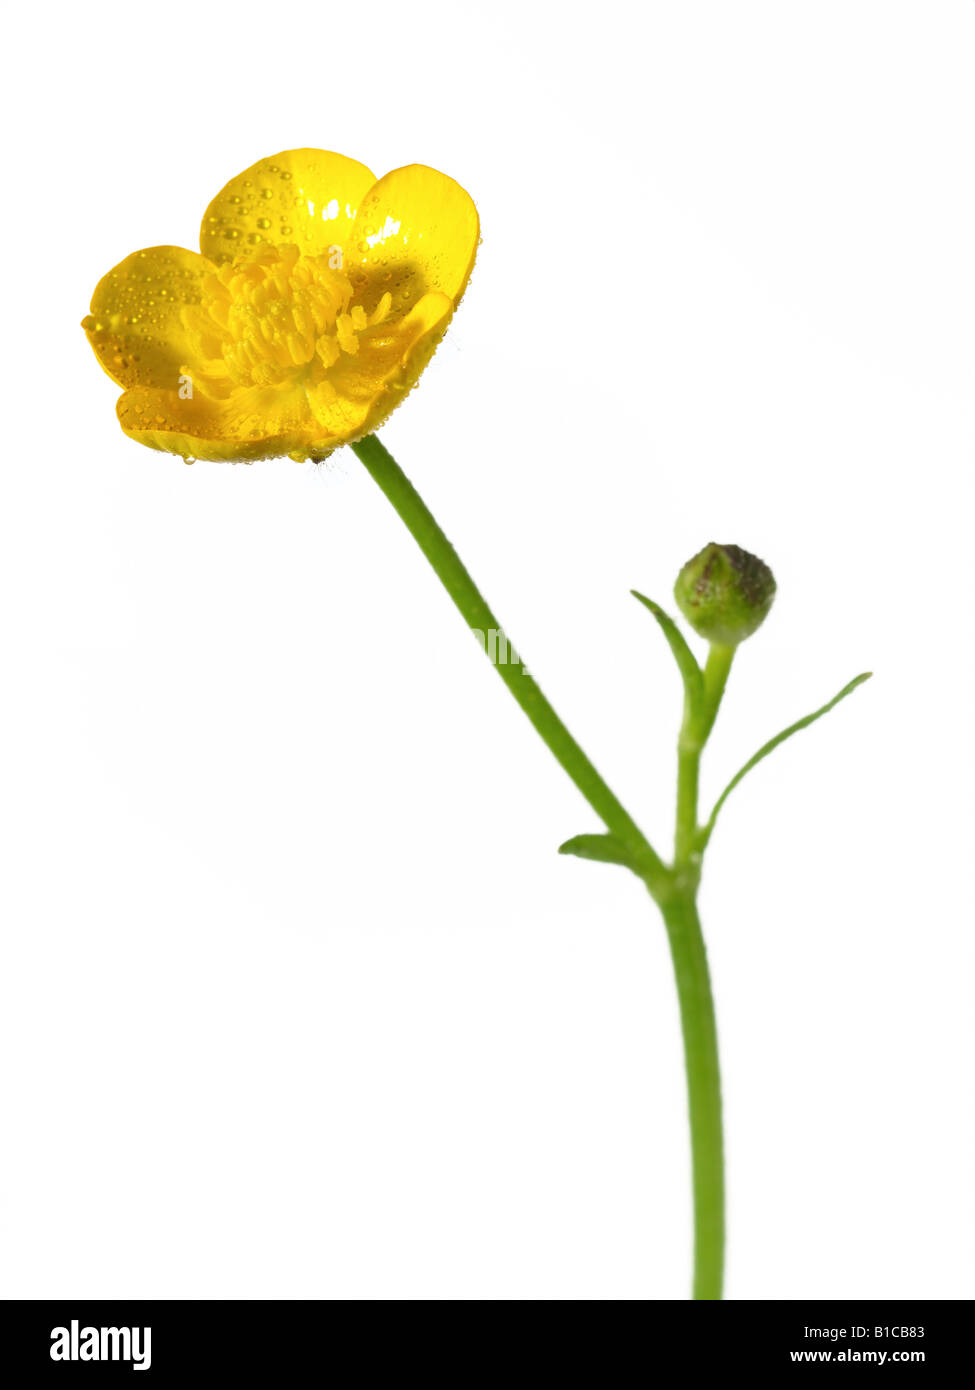 buttercup - Stock Image